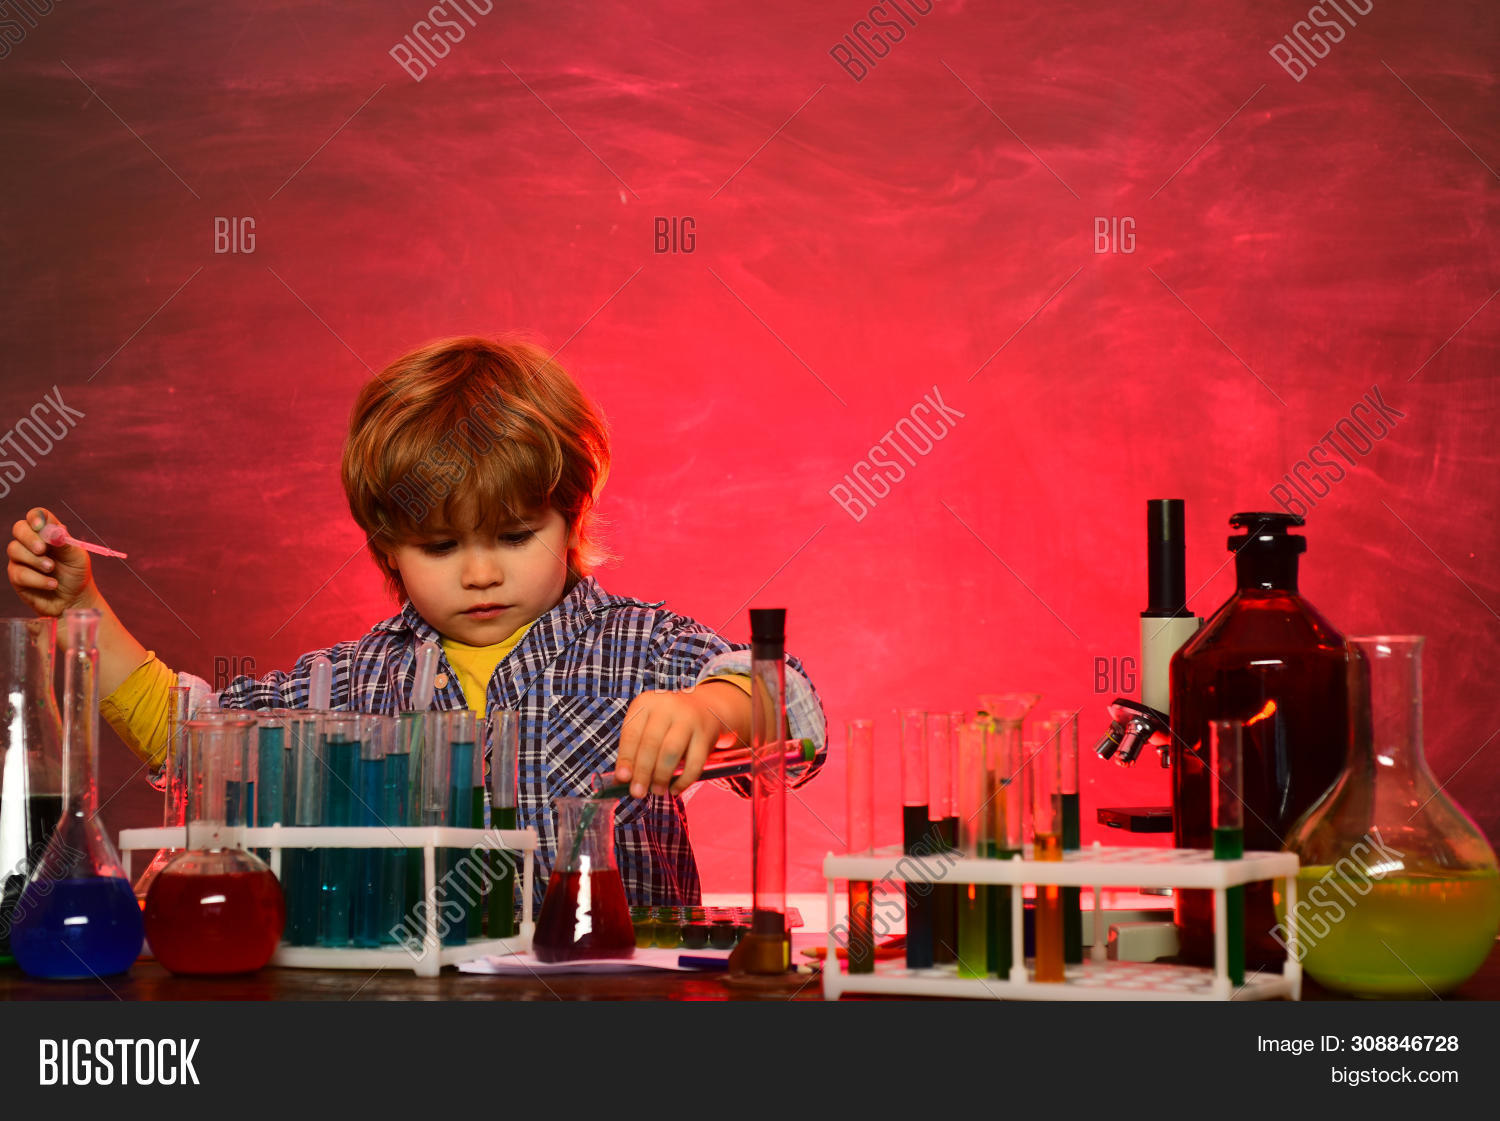 Back To School. First Grade. Elementary School. Little Kids Scientist Earning Chemistry In School La